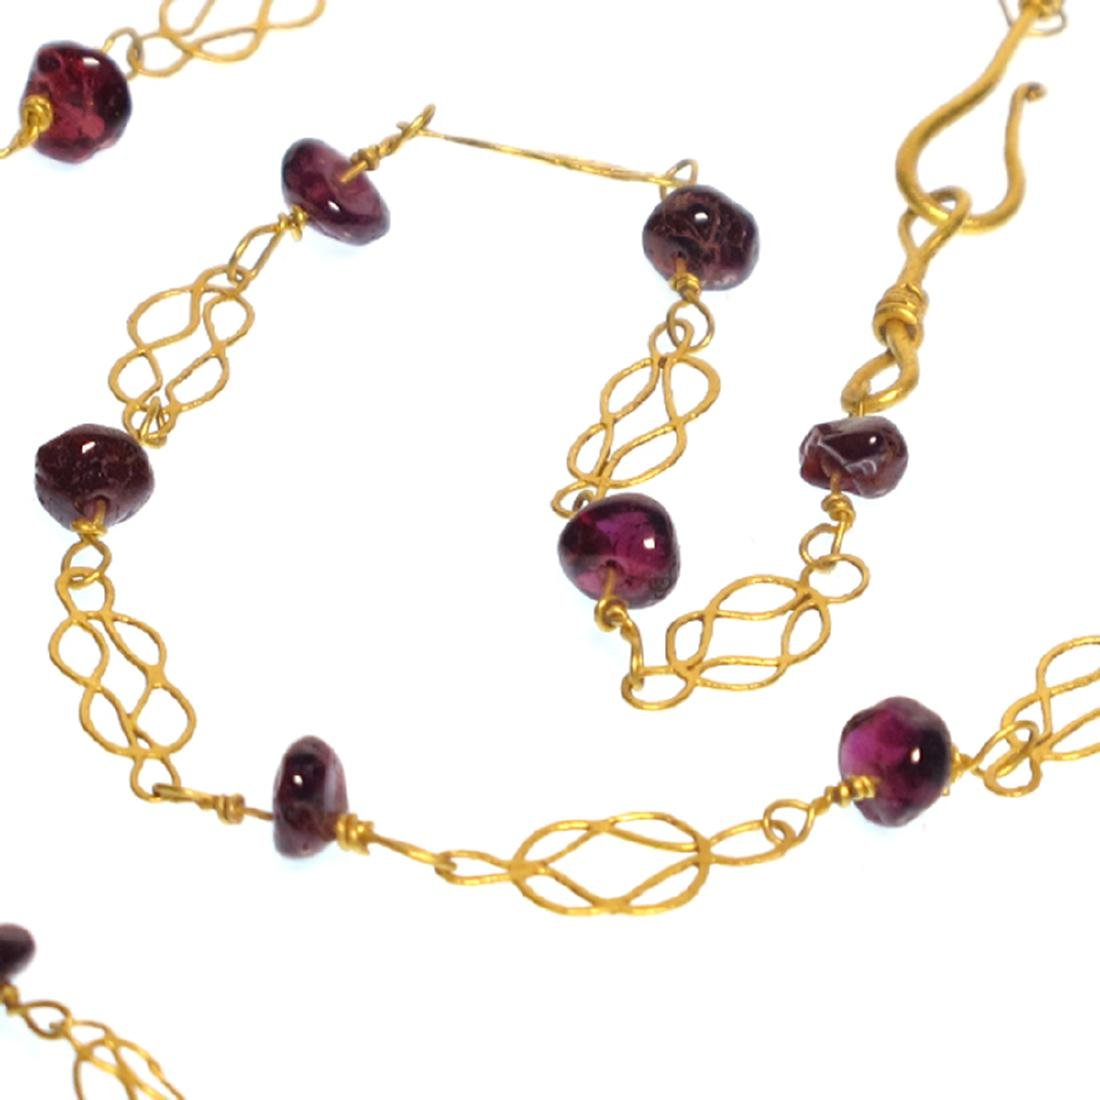 Roman Gold and Garnets Necklace, 3rd-4th Century A.D.